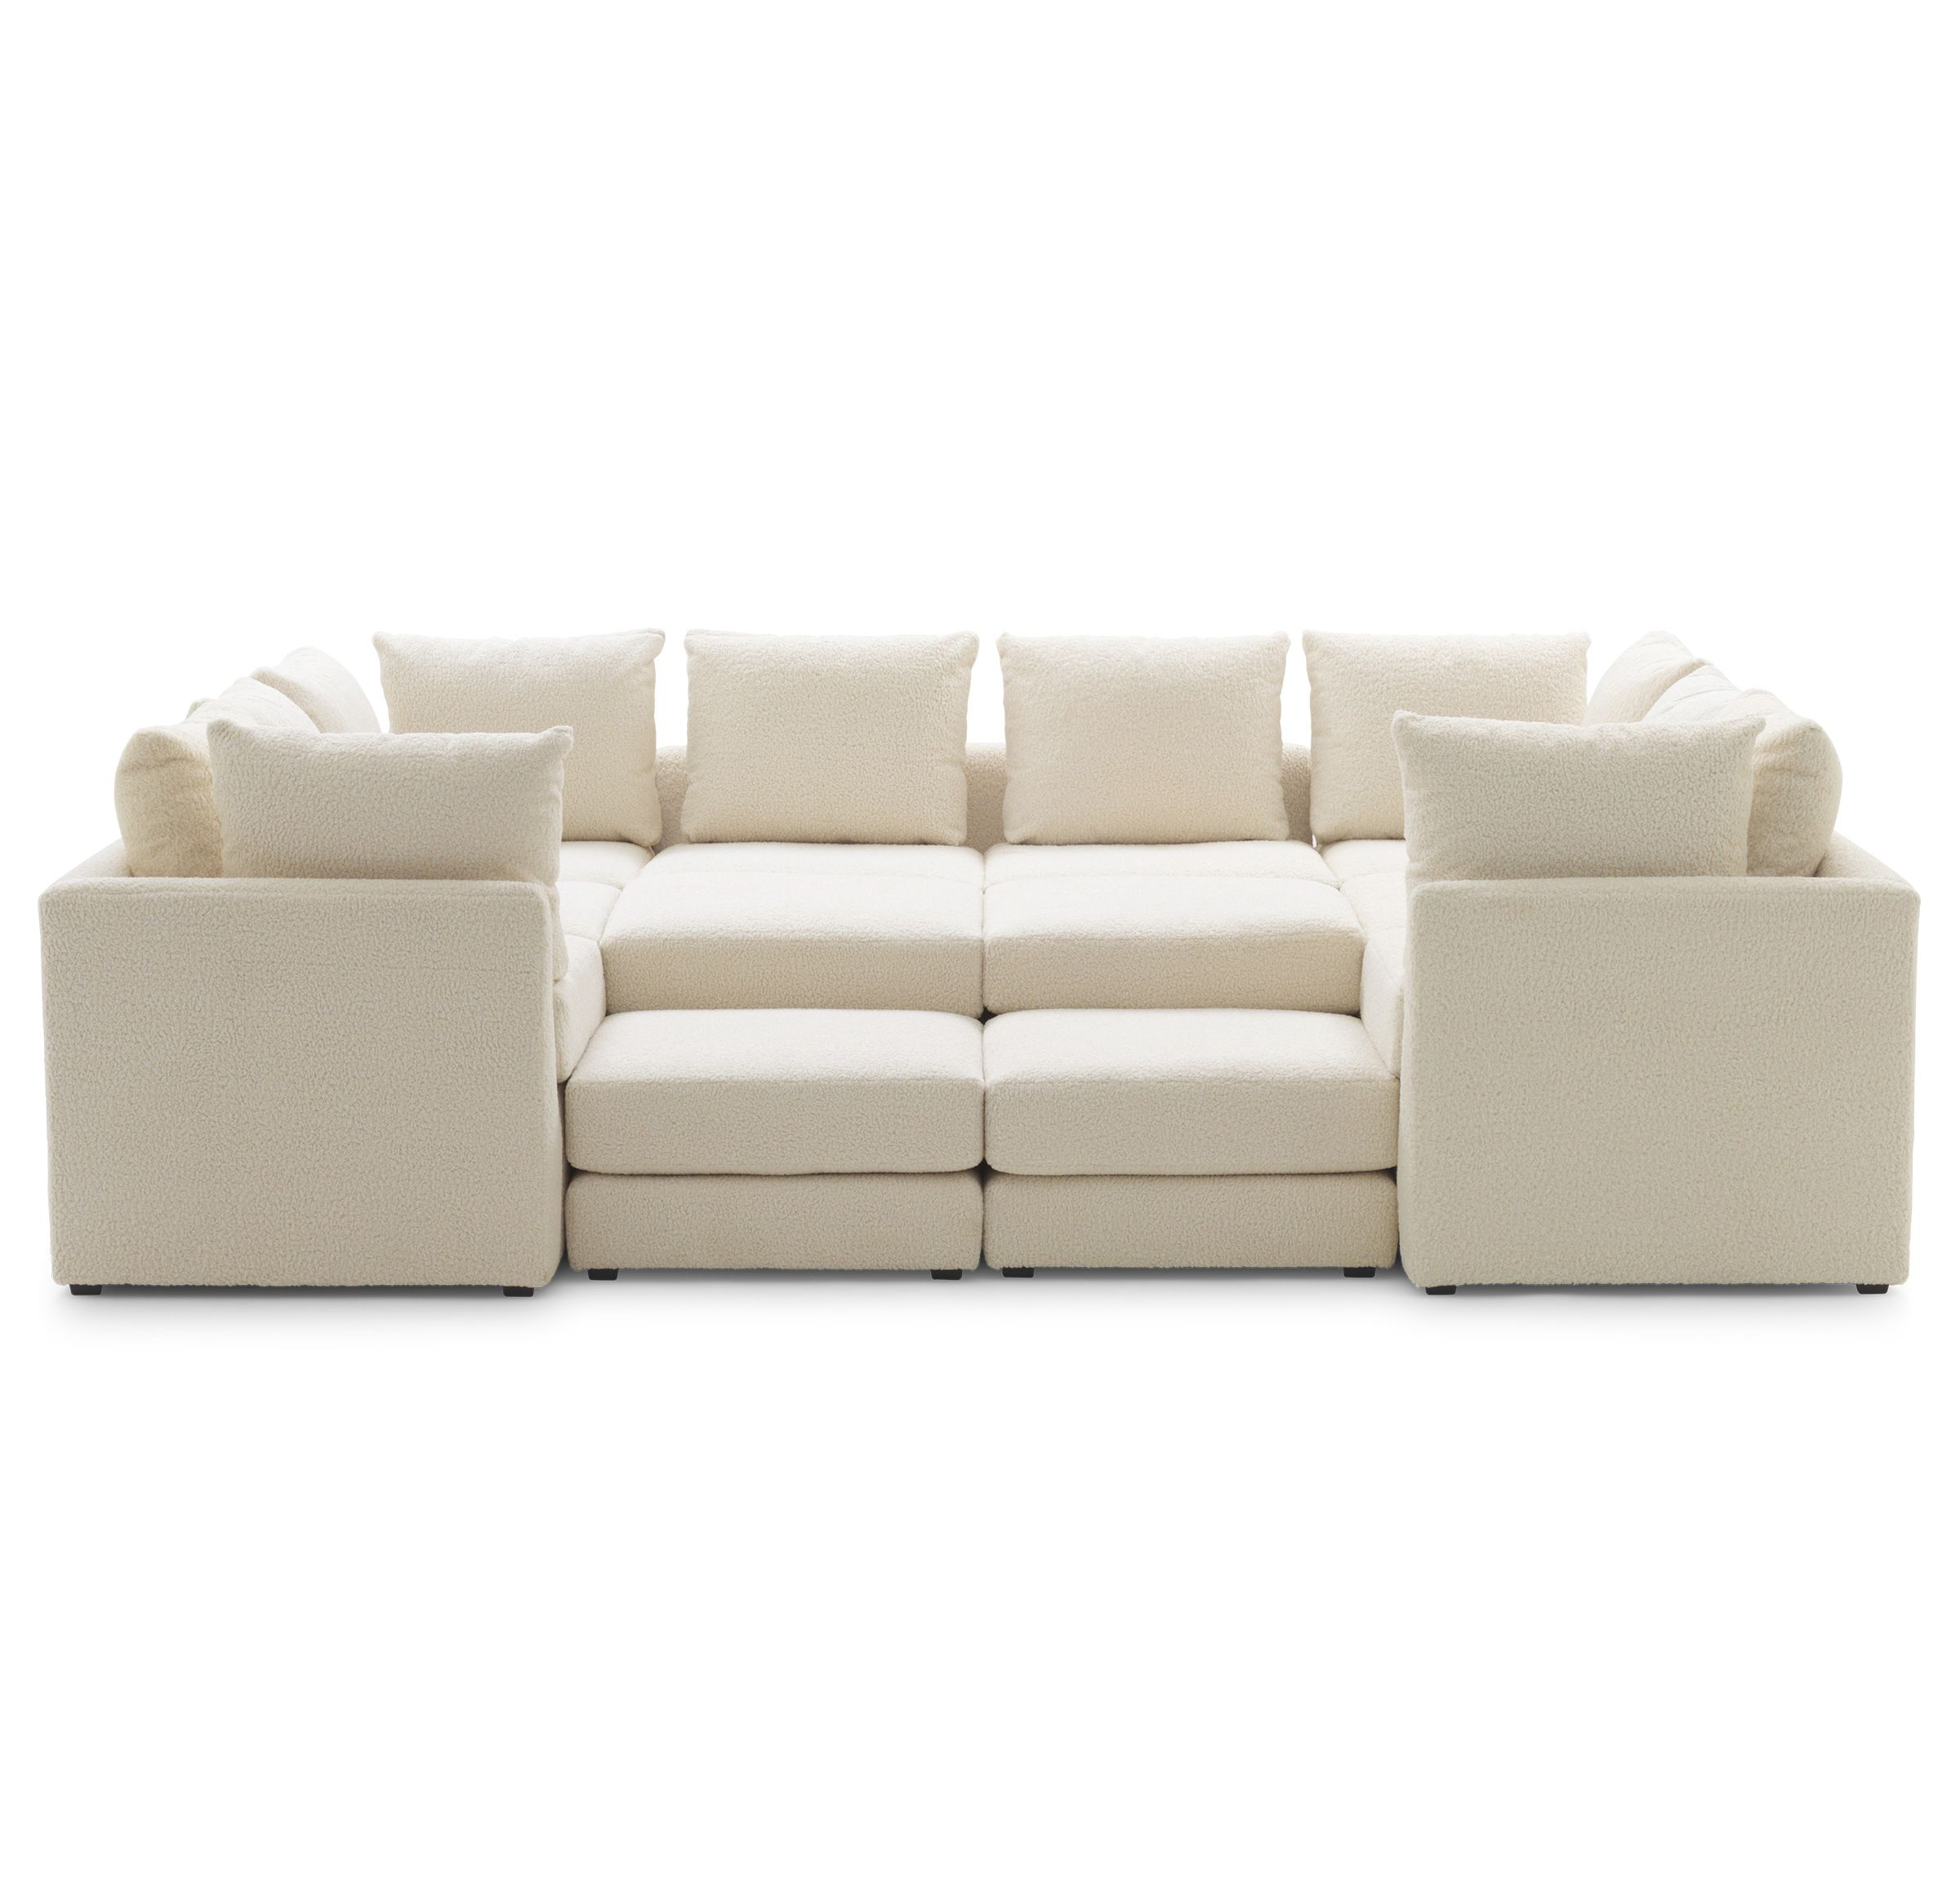 Dr. Pitt 7-Pc Sectional Sofa | Products in 2019 | Sectional ...